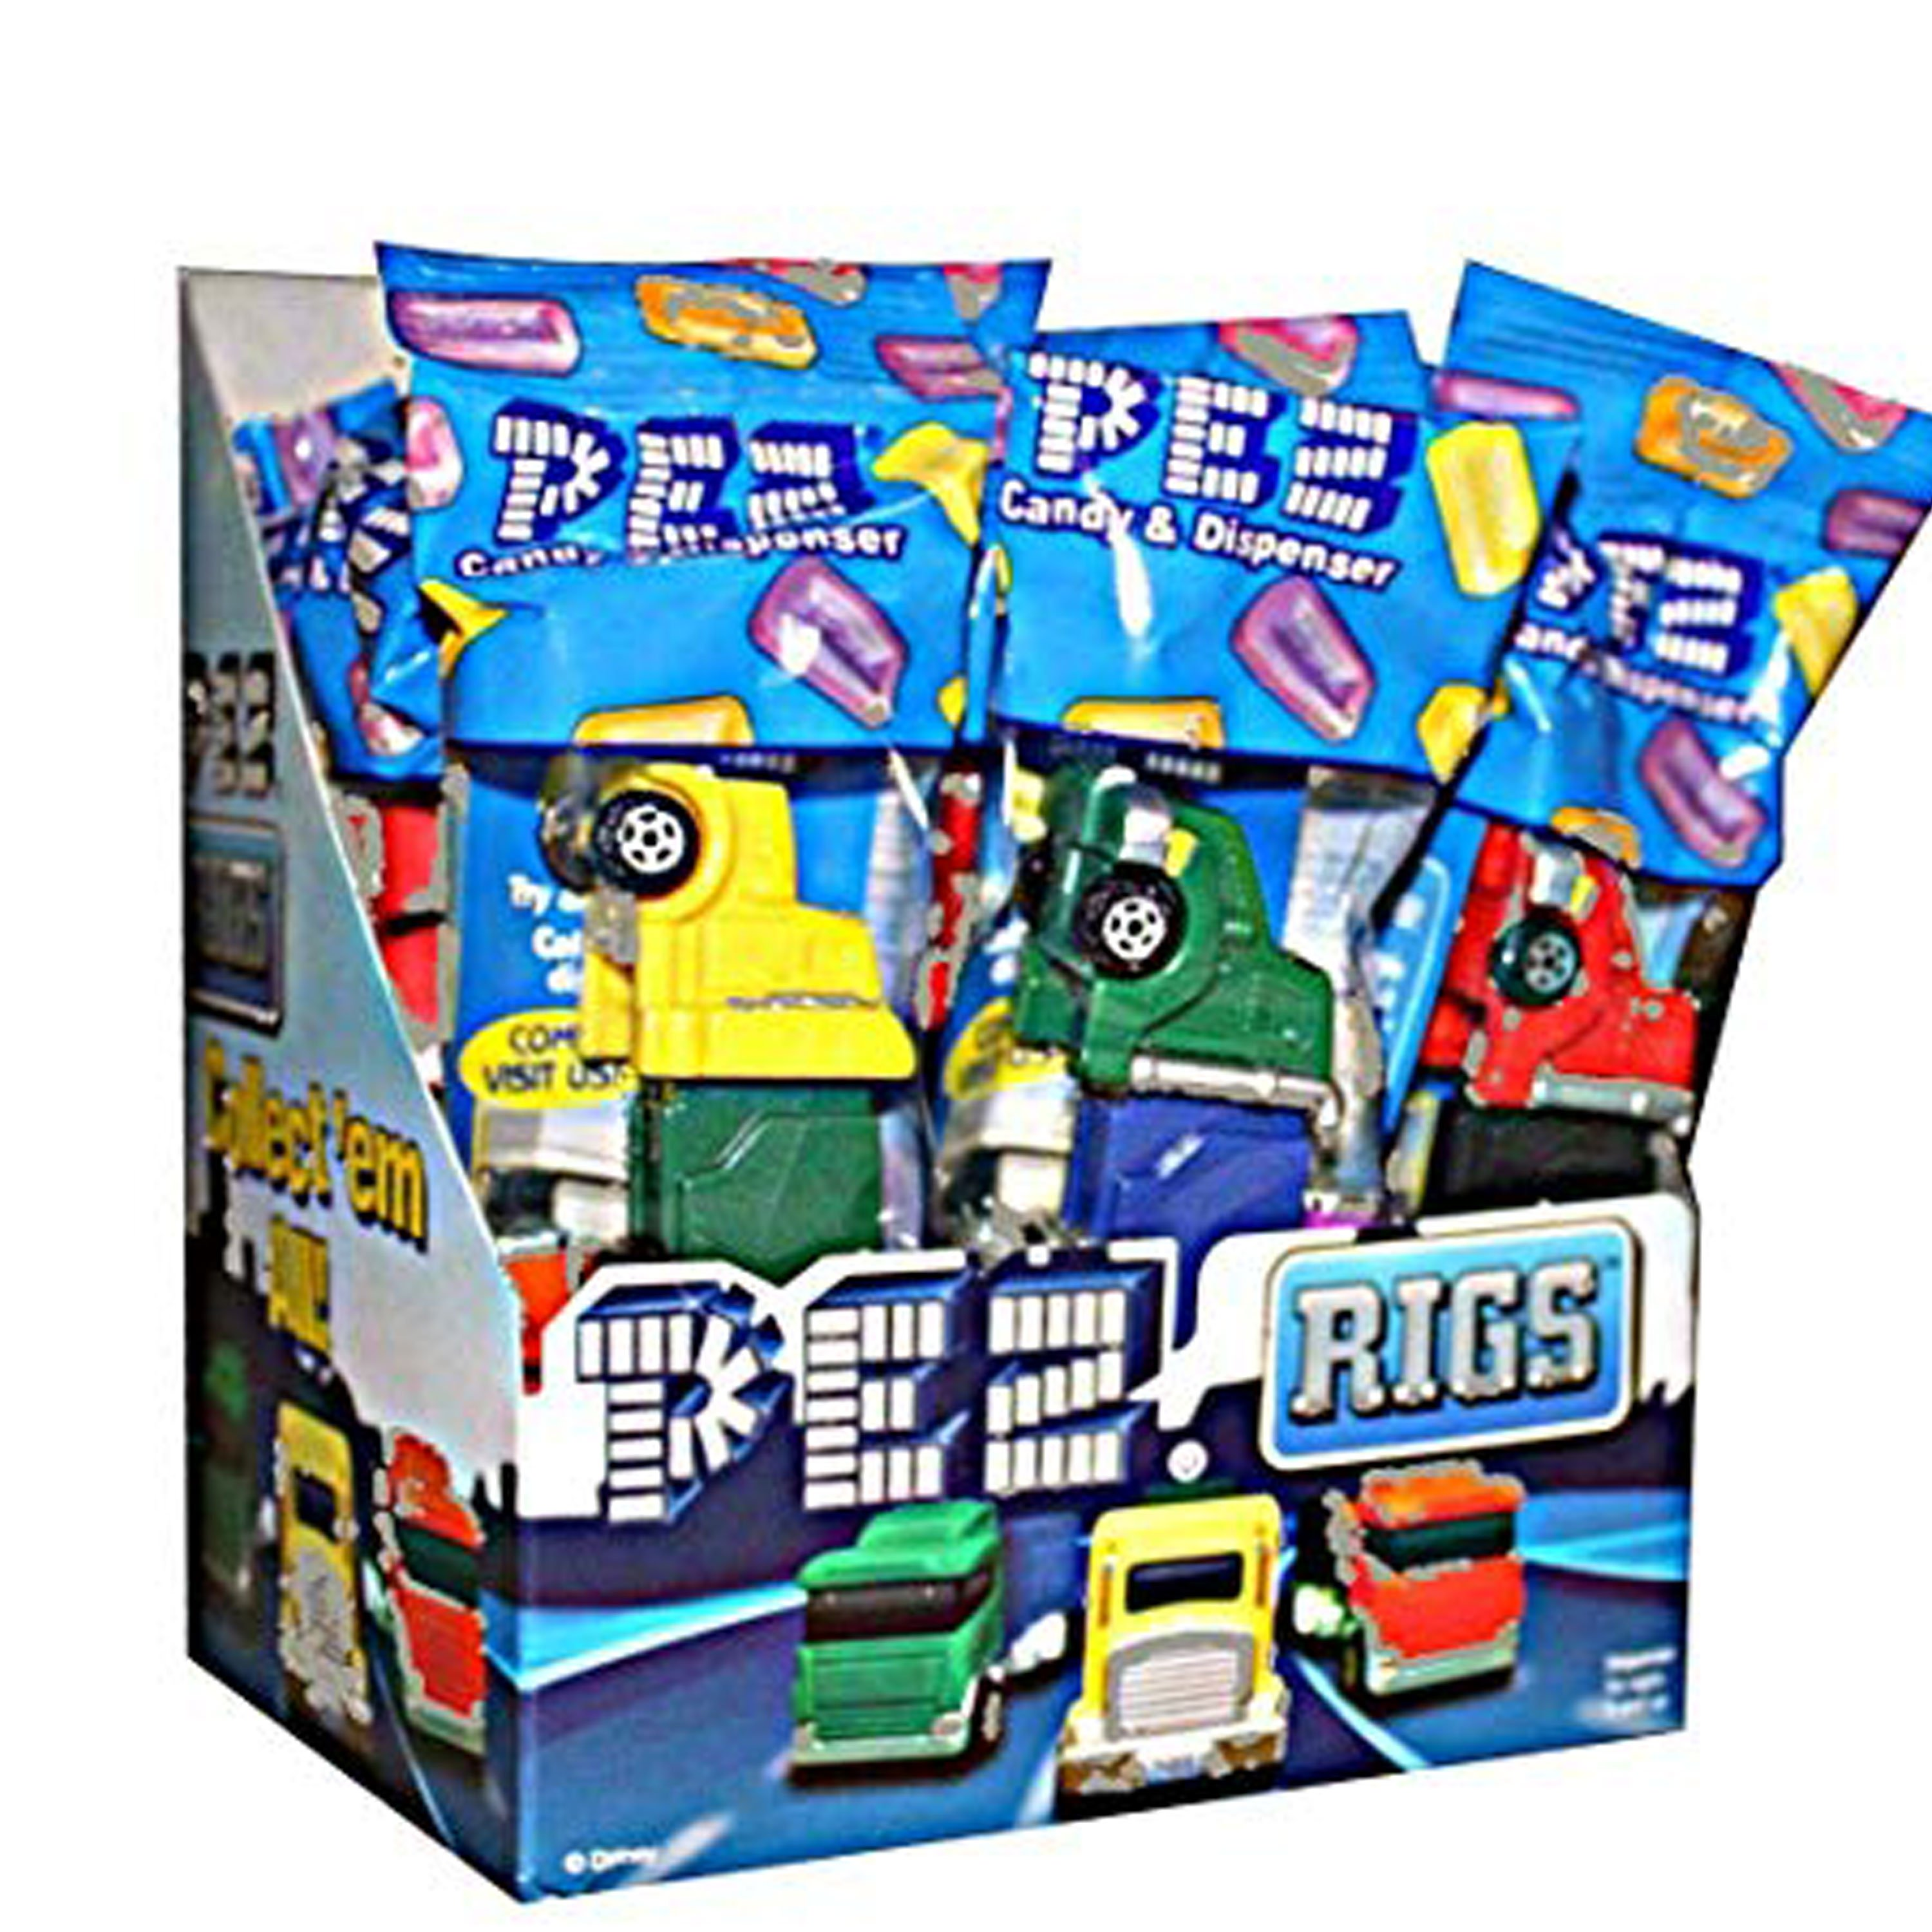 PEZ Candy Rigs Assortment, candy dispenser plus 2 rolls of assorted fruit candy, box of 12